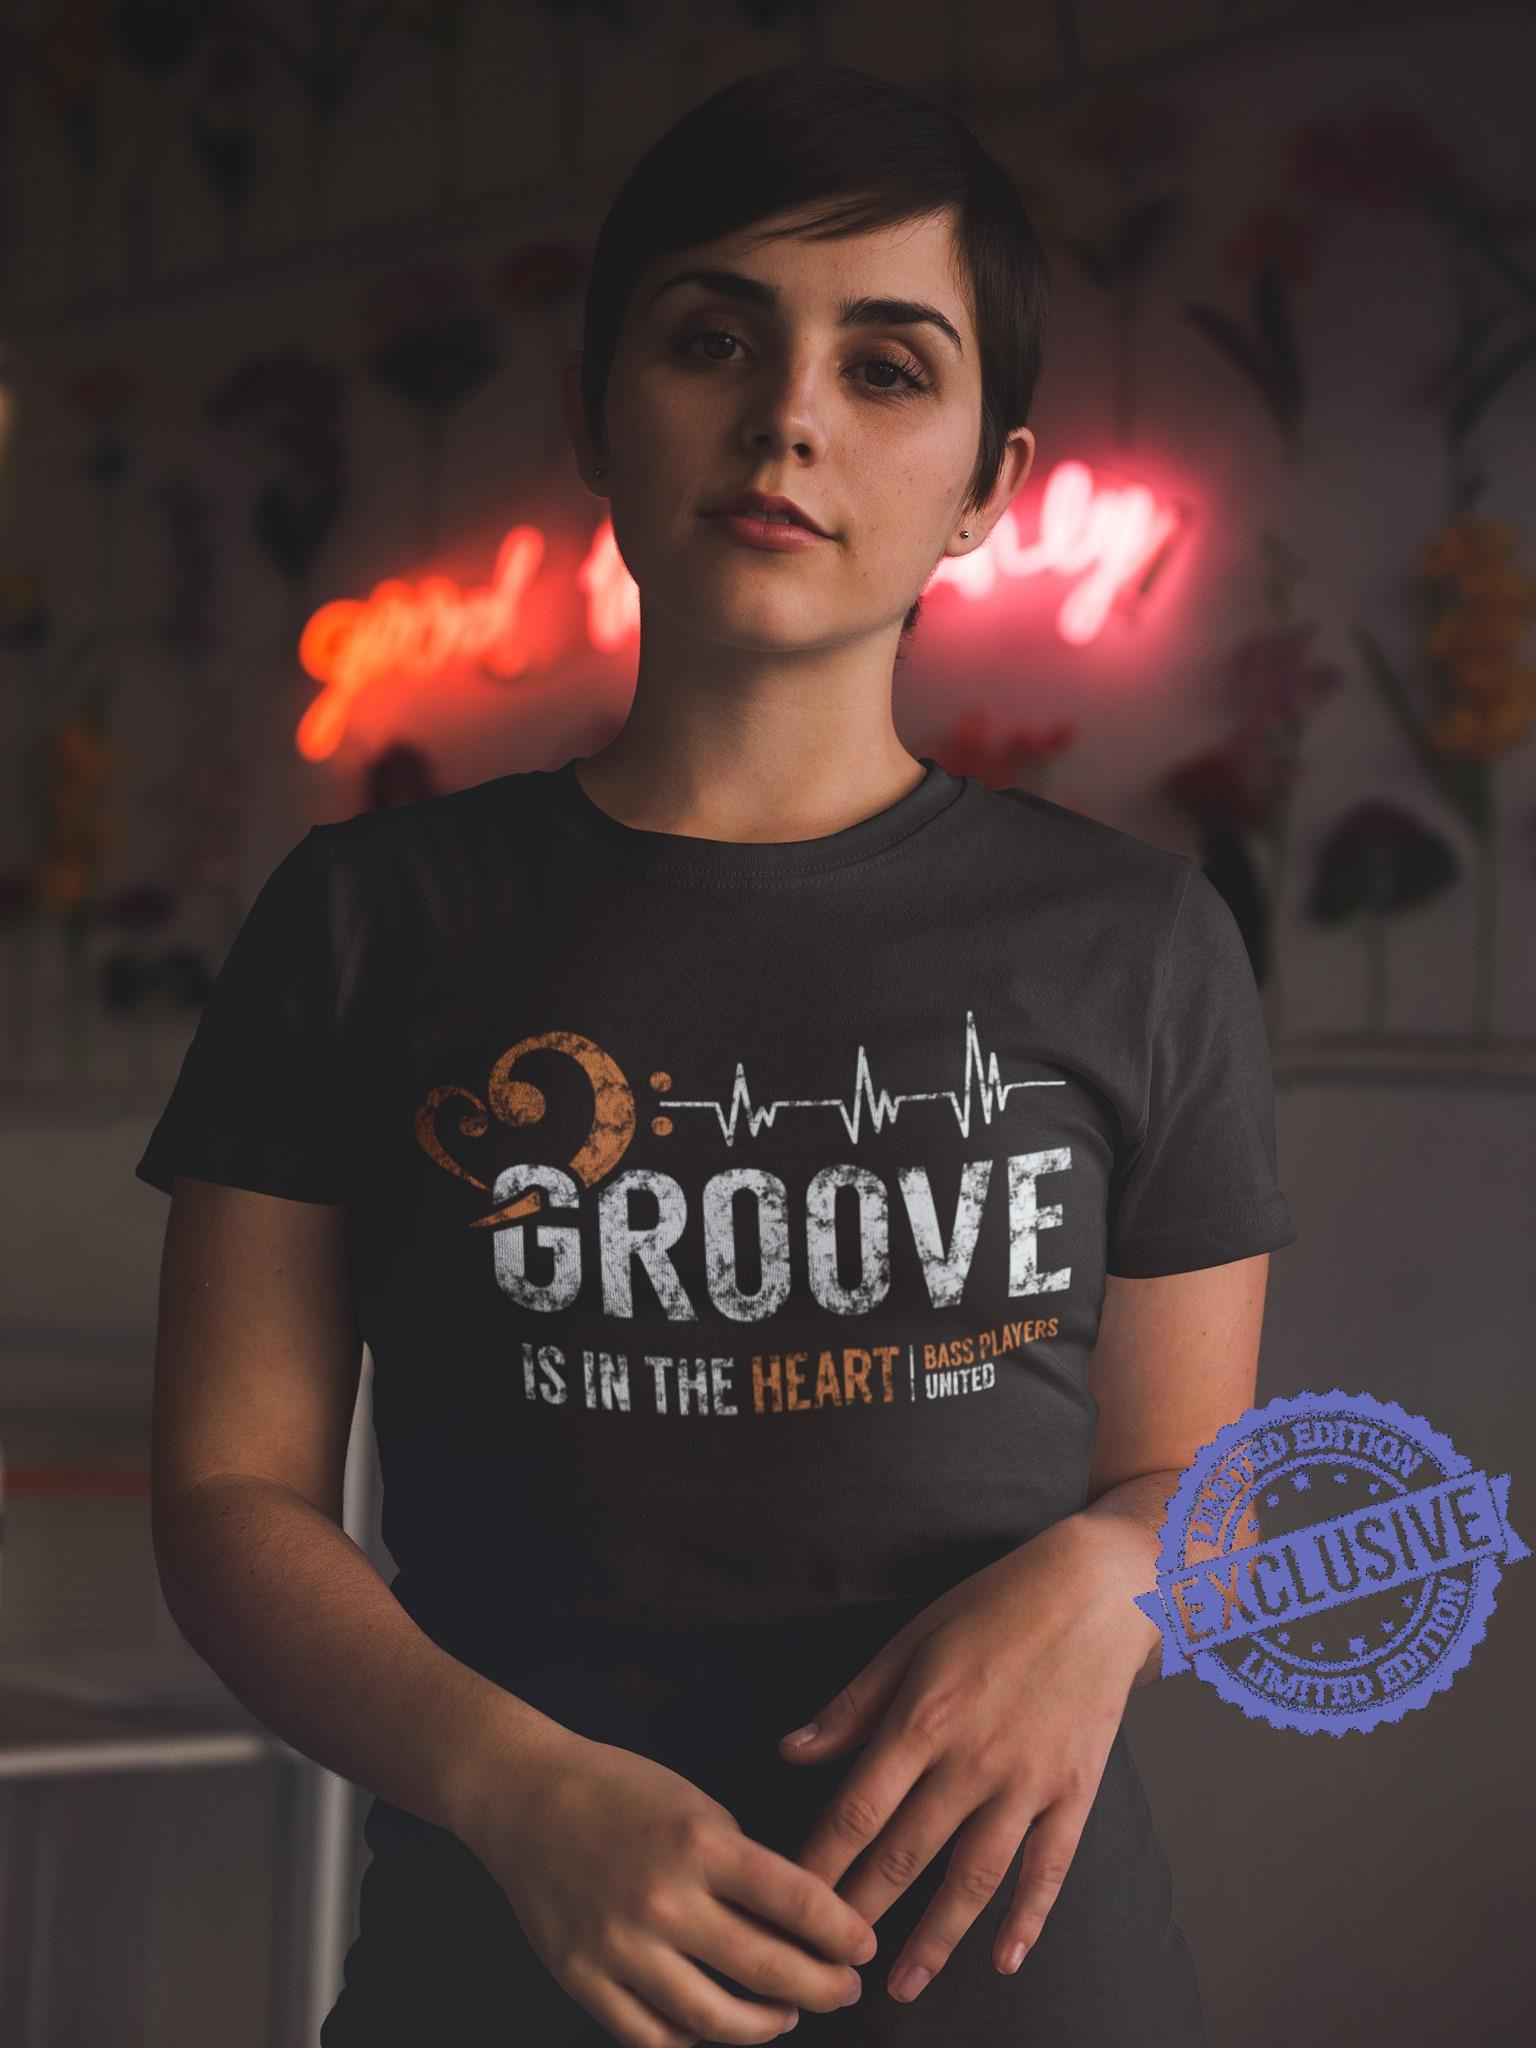 Groove is in the heart bass players united shirt